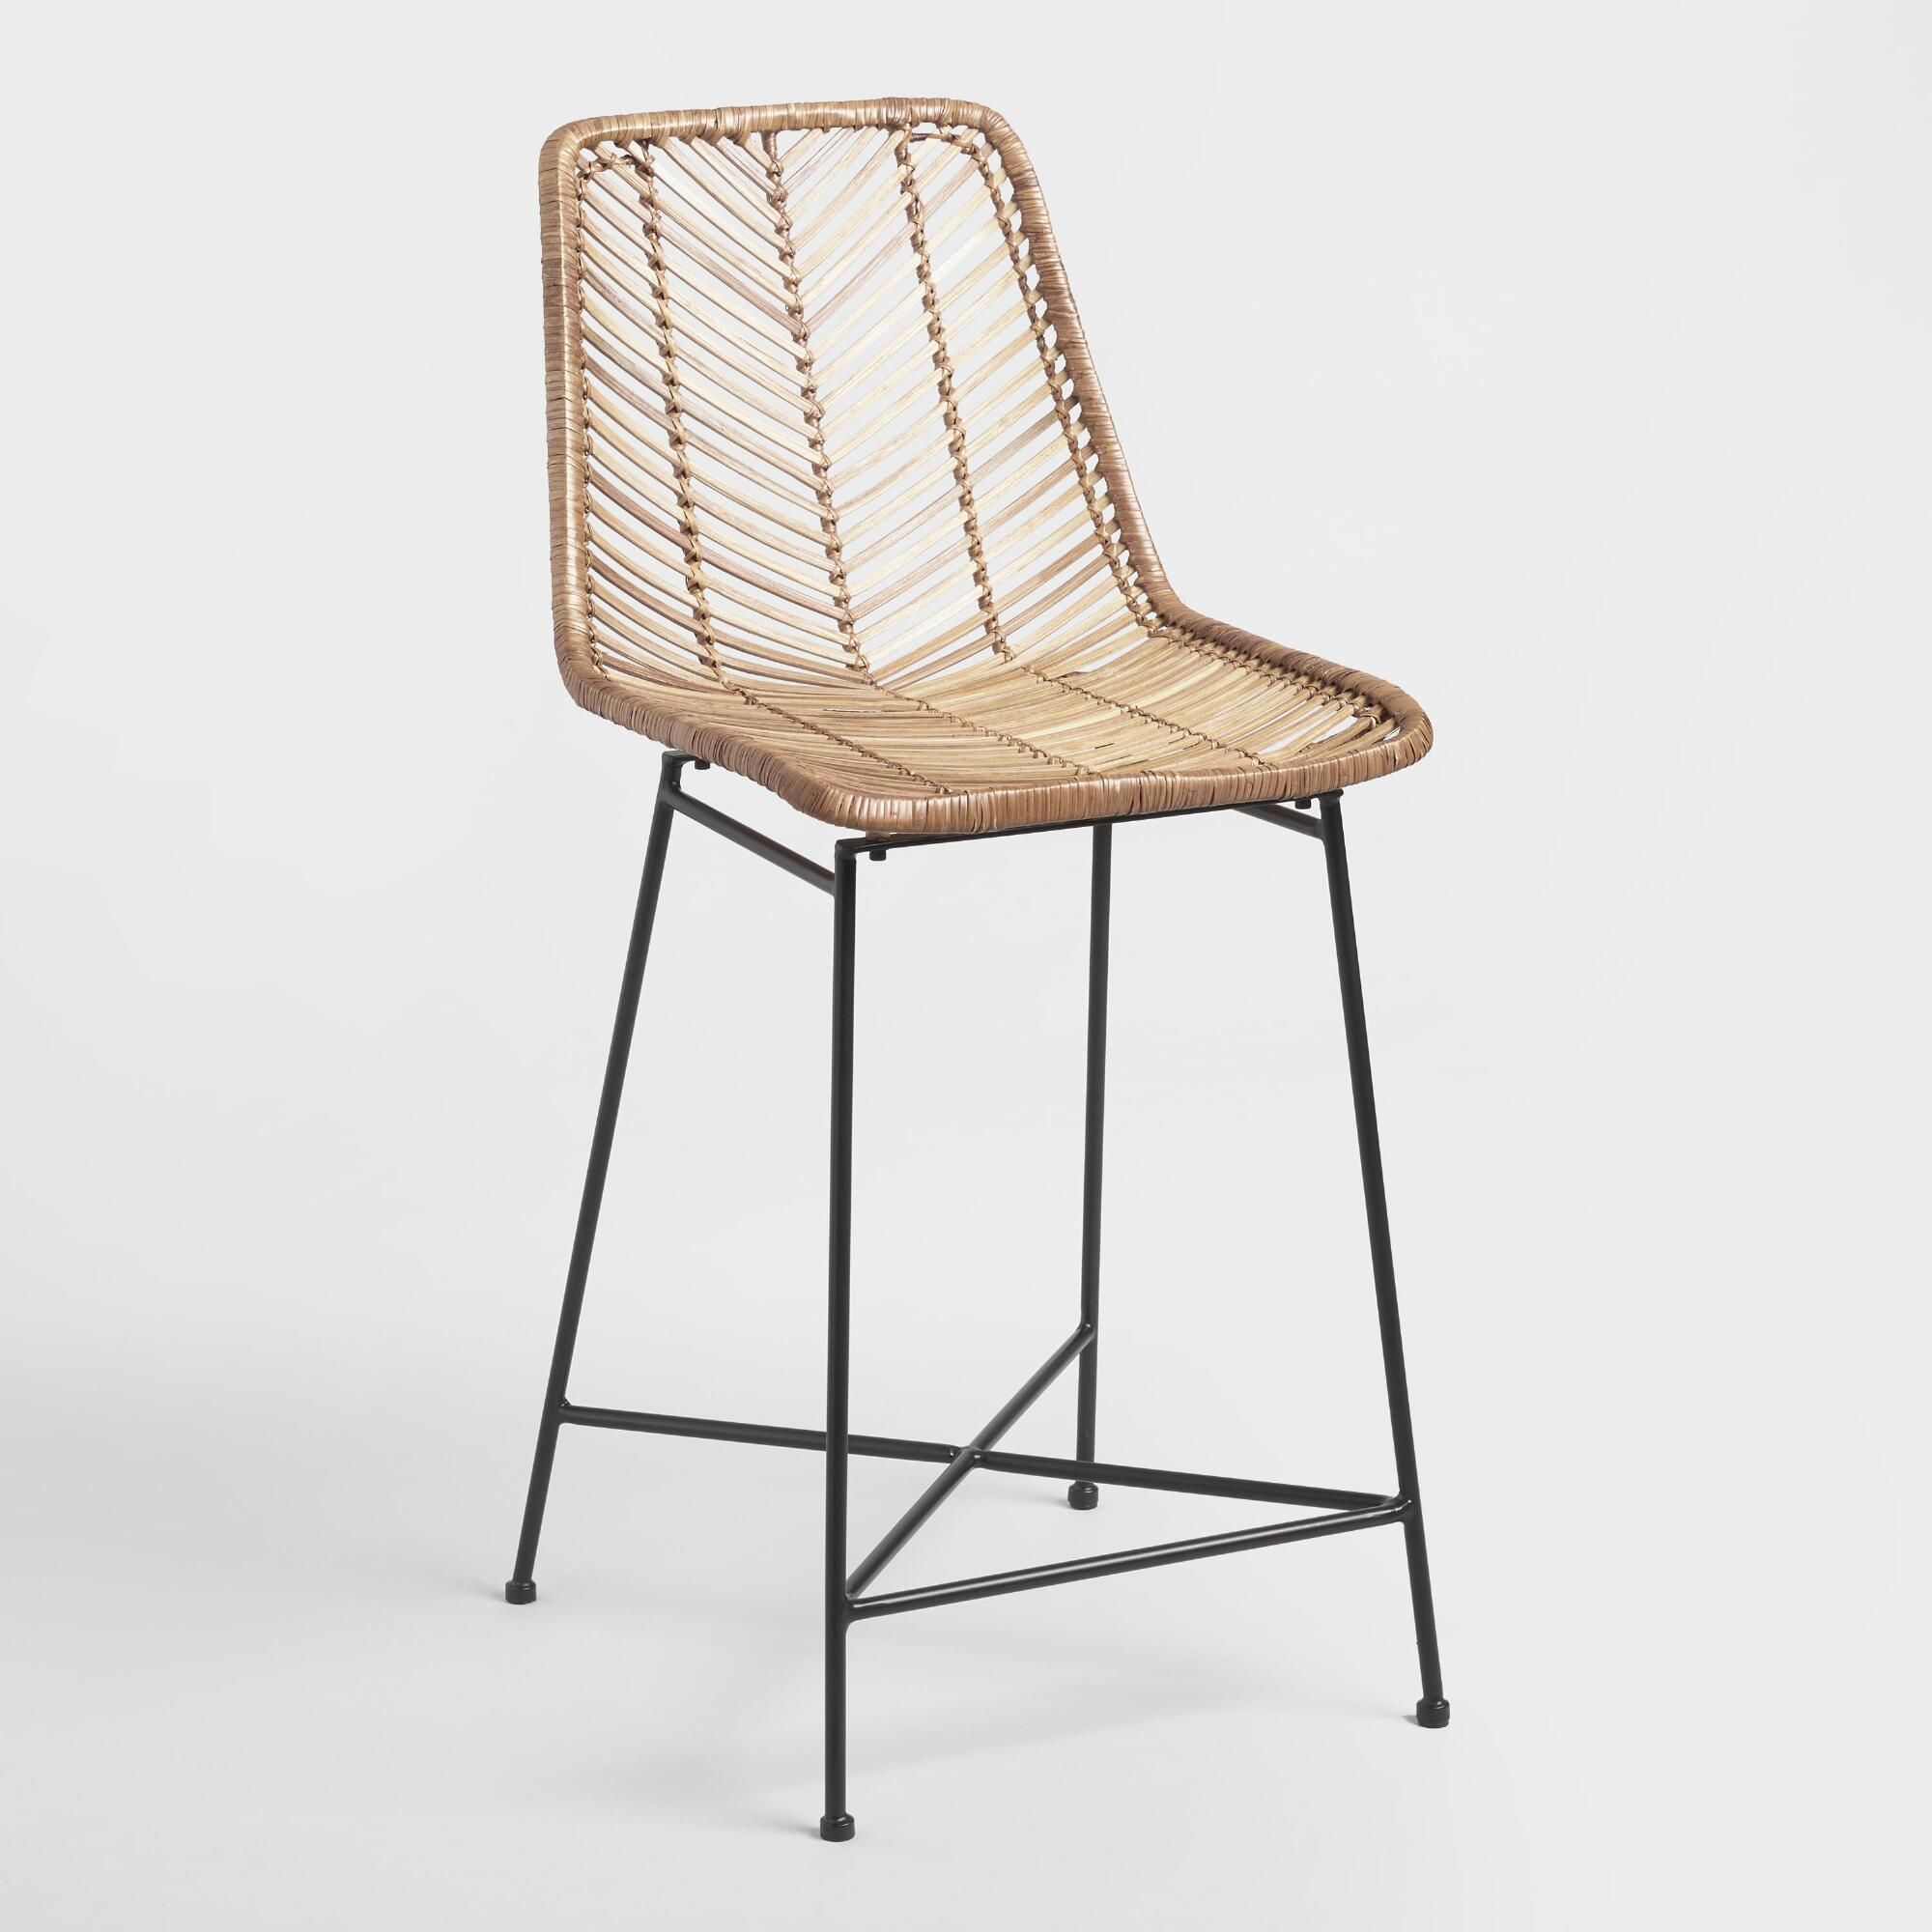 Natural Wicker Loren Counter Stool by World Market in 2019